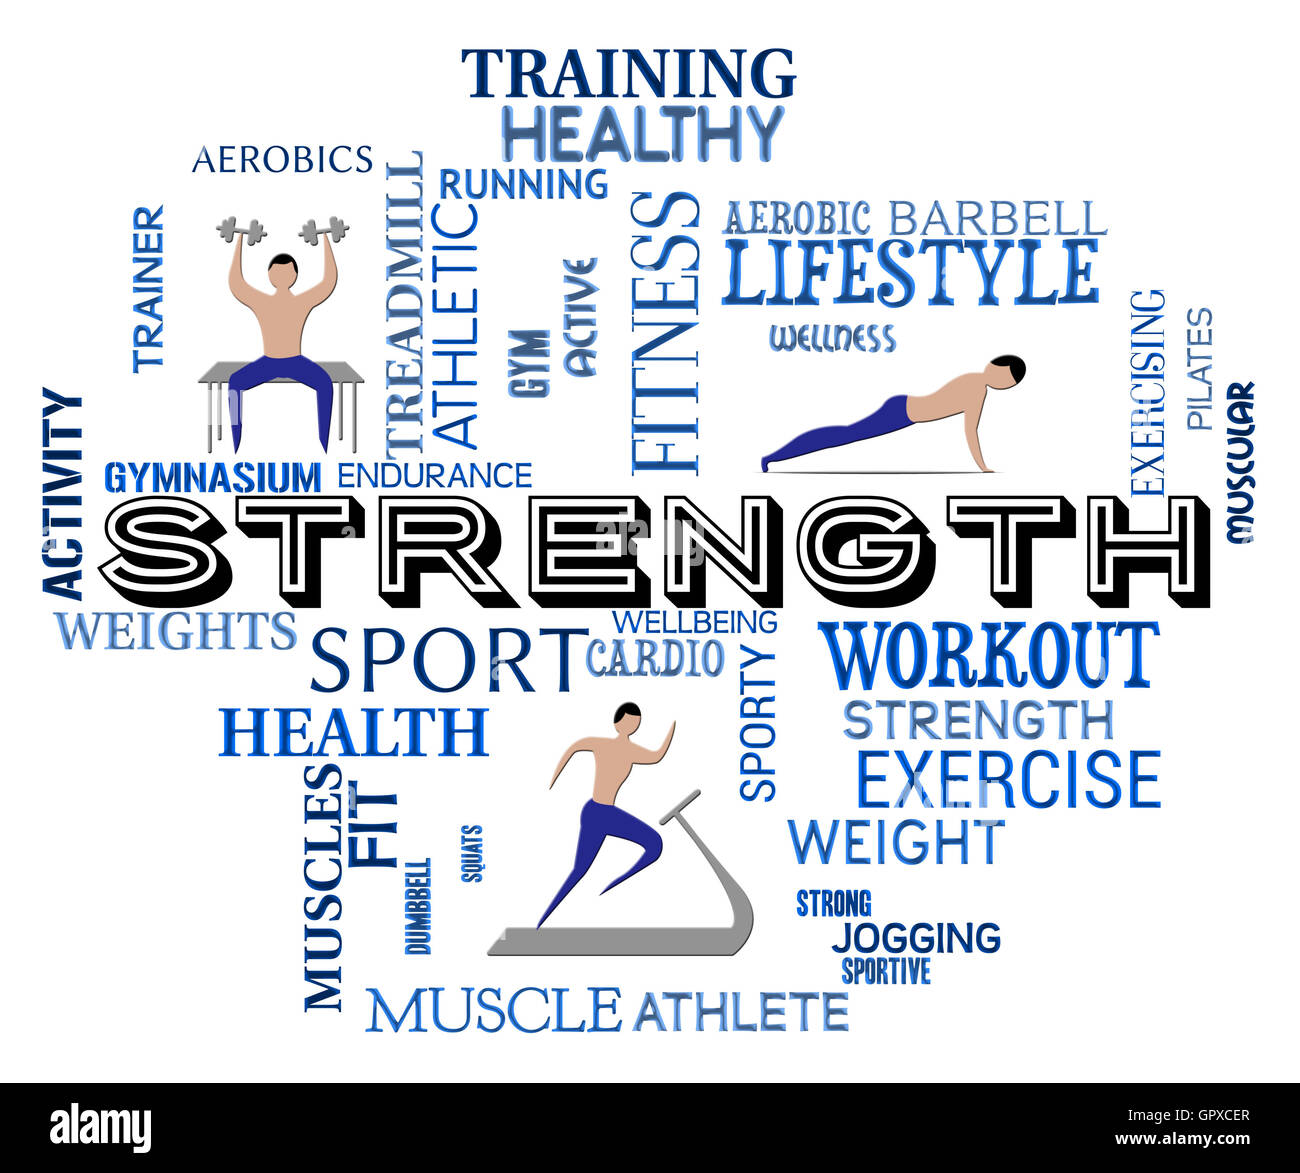 Fitness Strength Showing Work Out And Aerobic - Stock Image